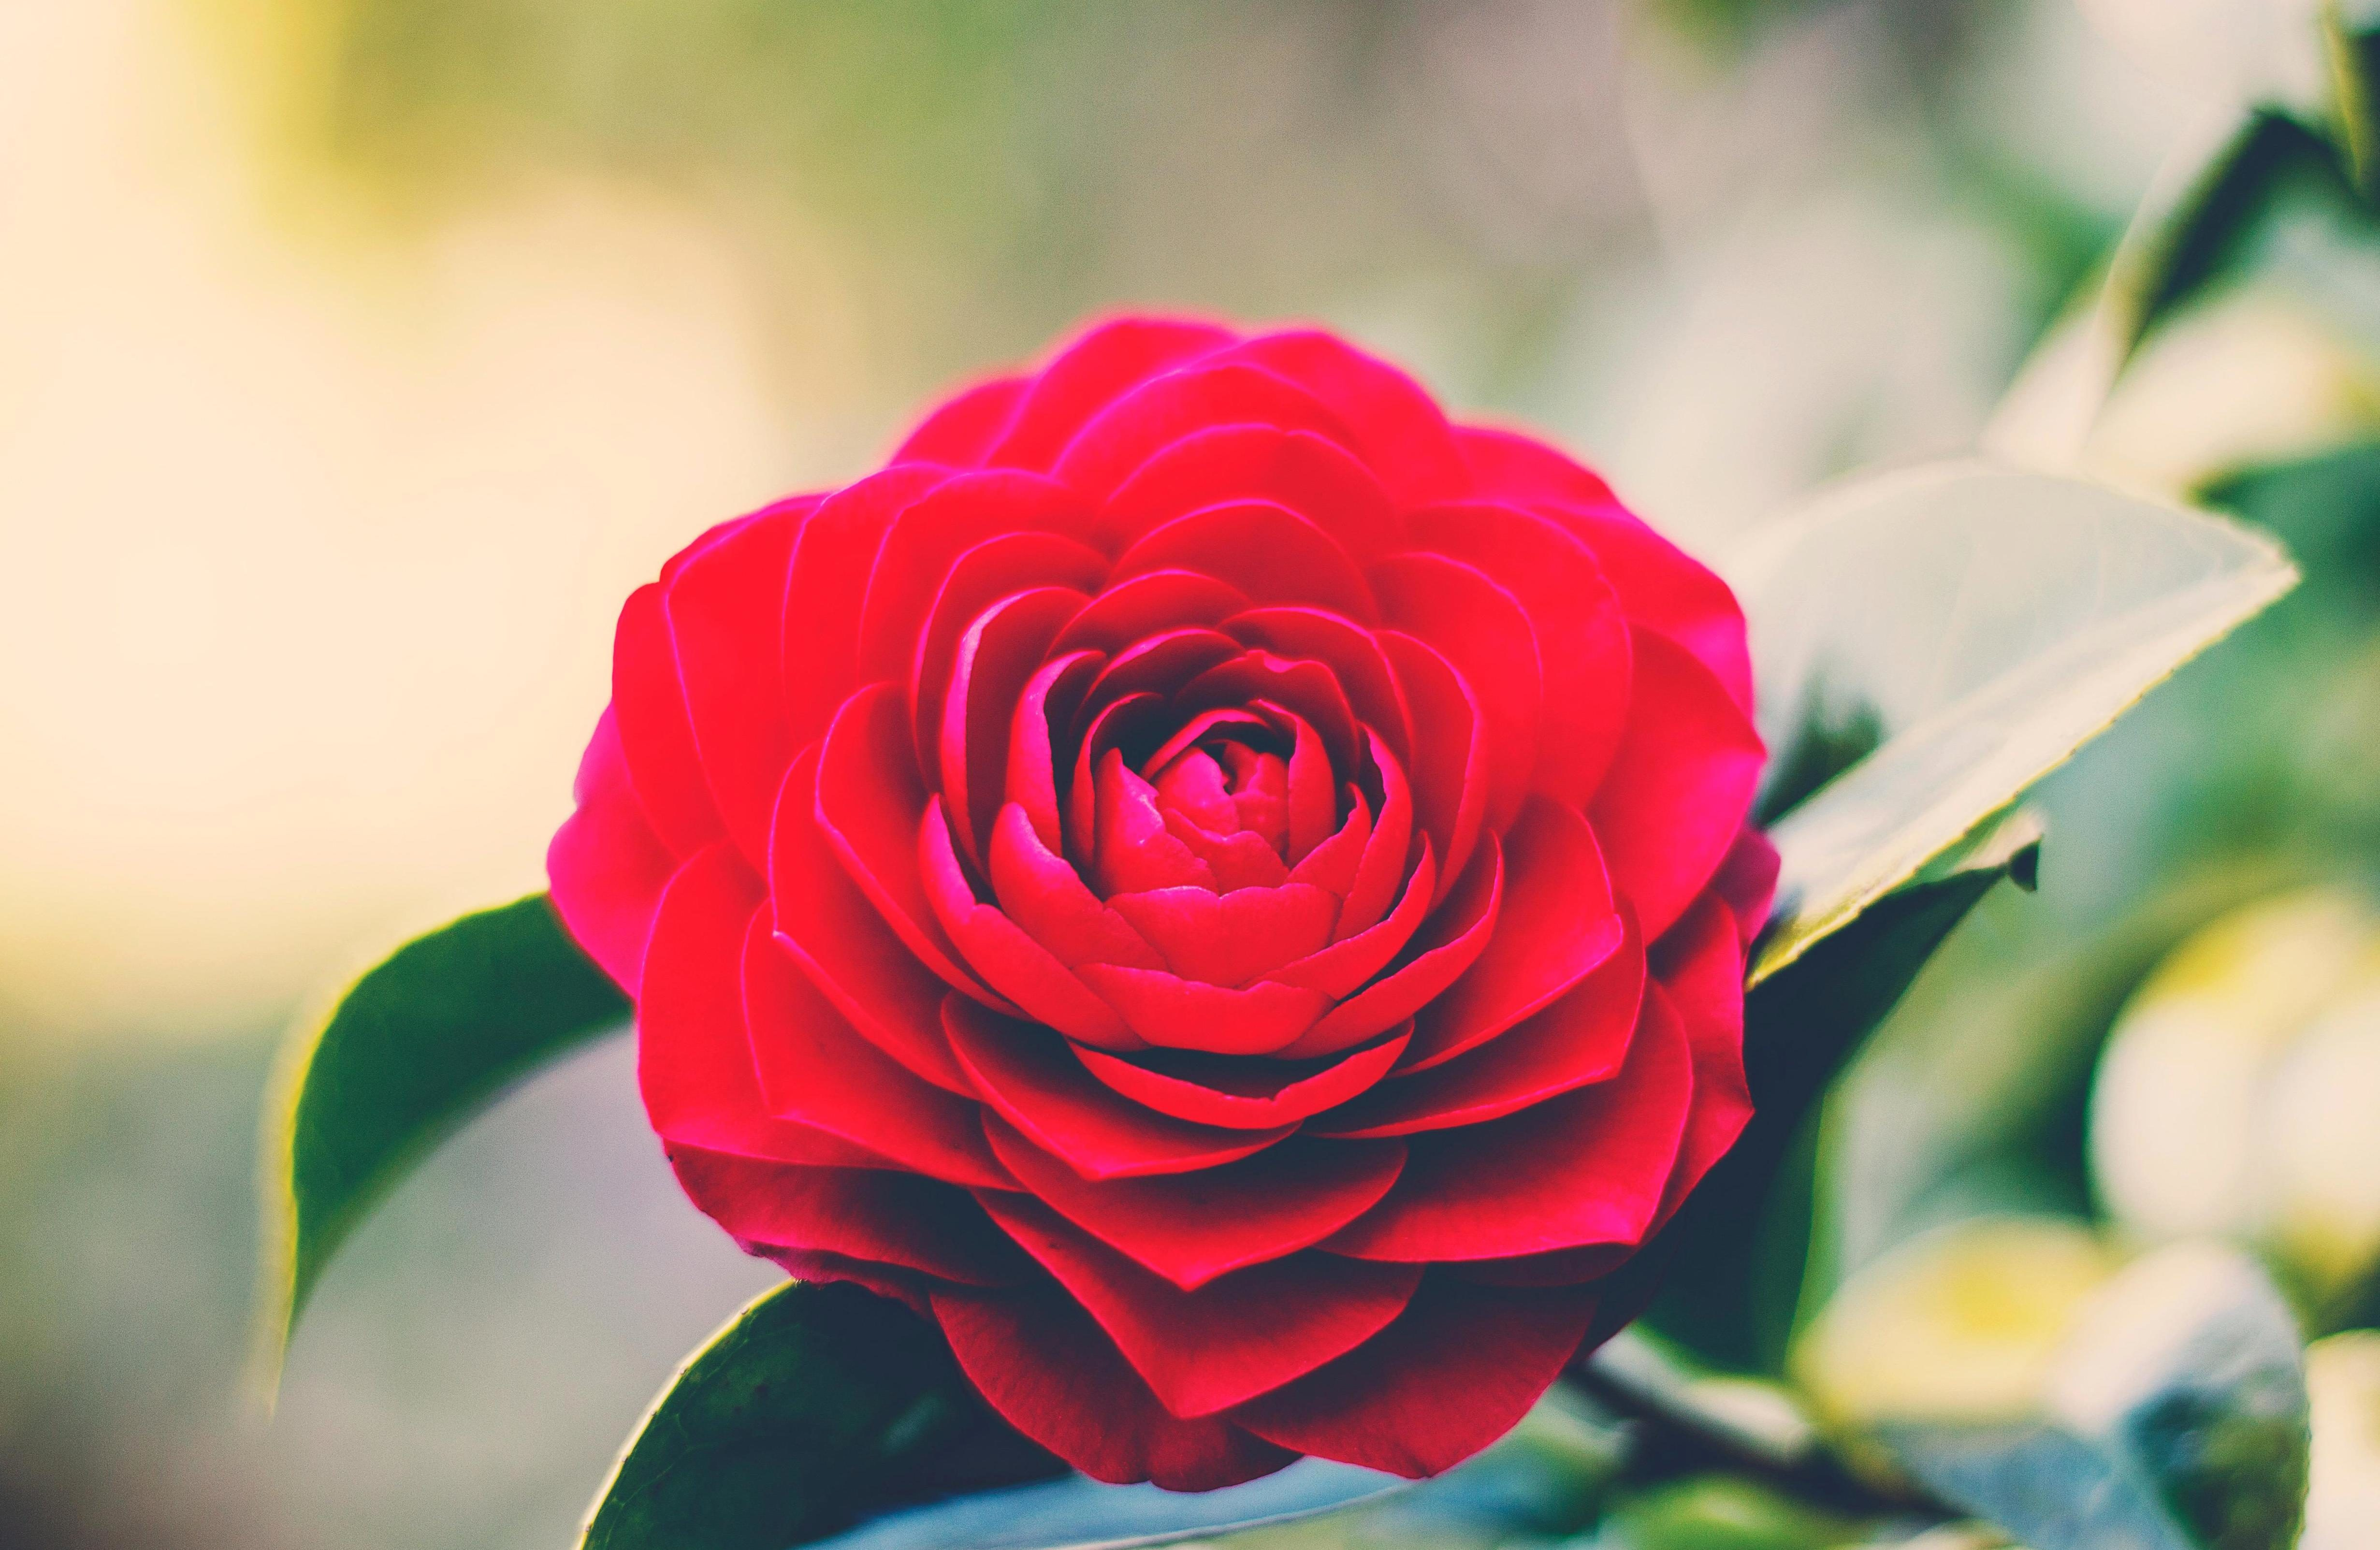 free picture: rose, flower, red, nature, garden